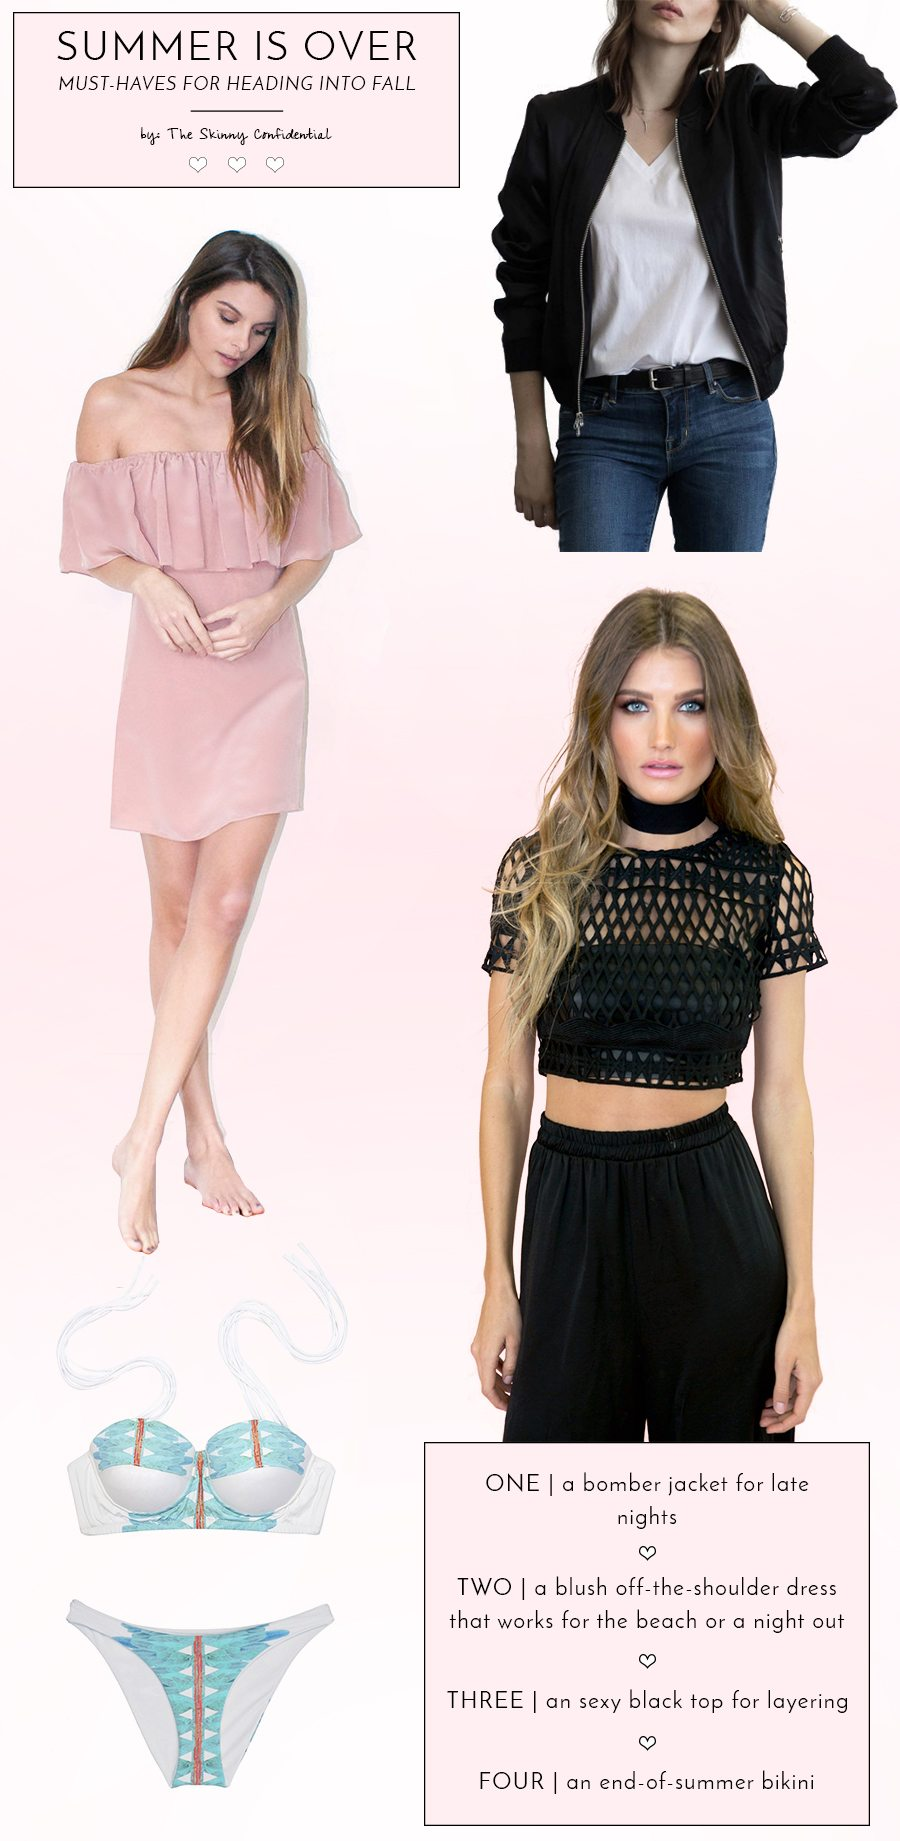 summer is over must haves | by the skinny confidential